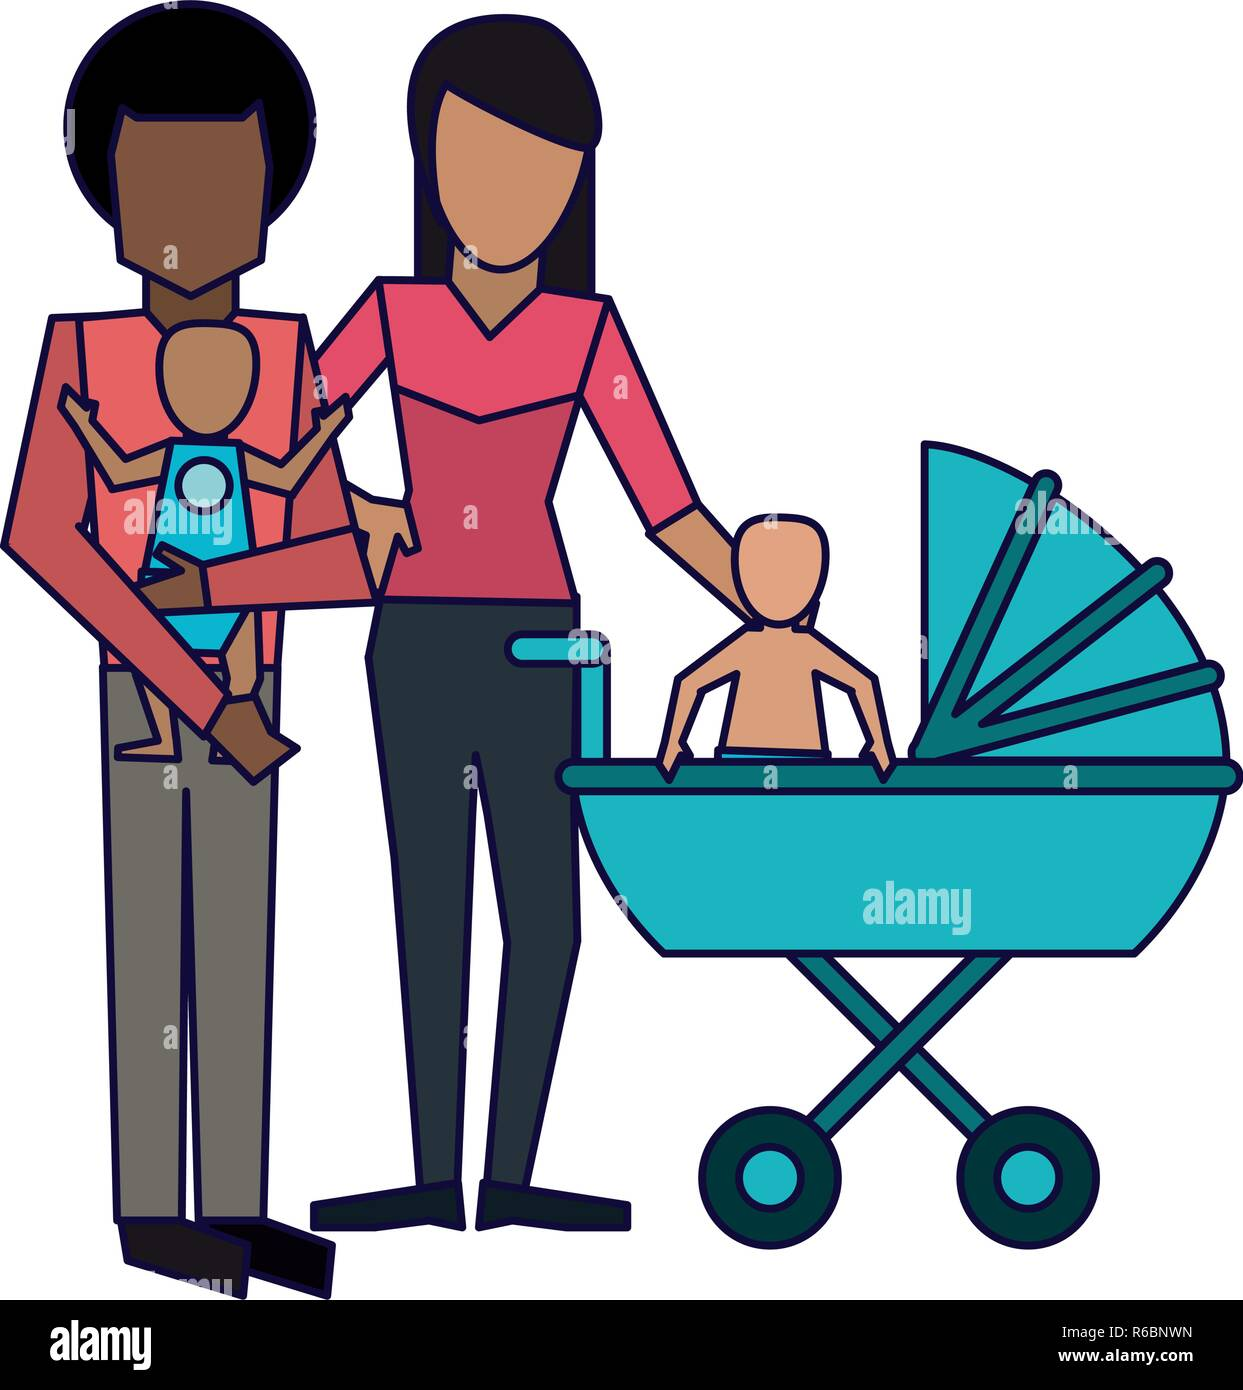 Family avatar concept - Stock Image